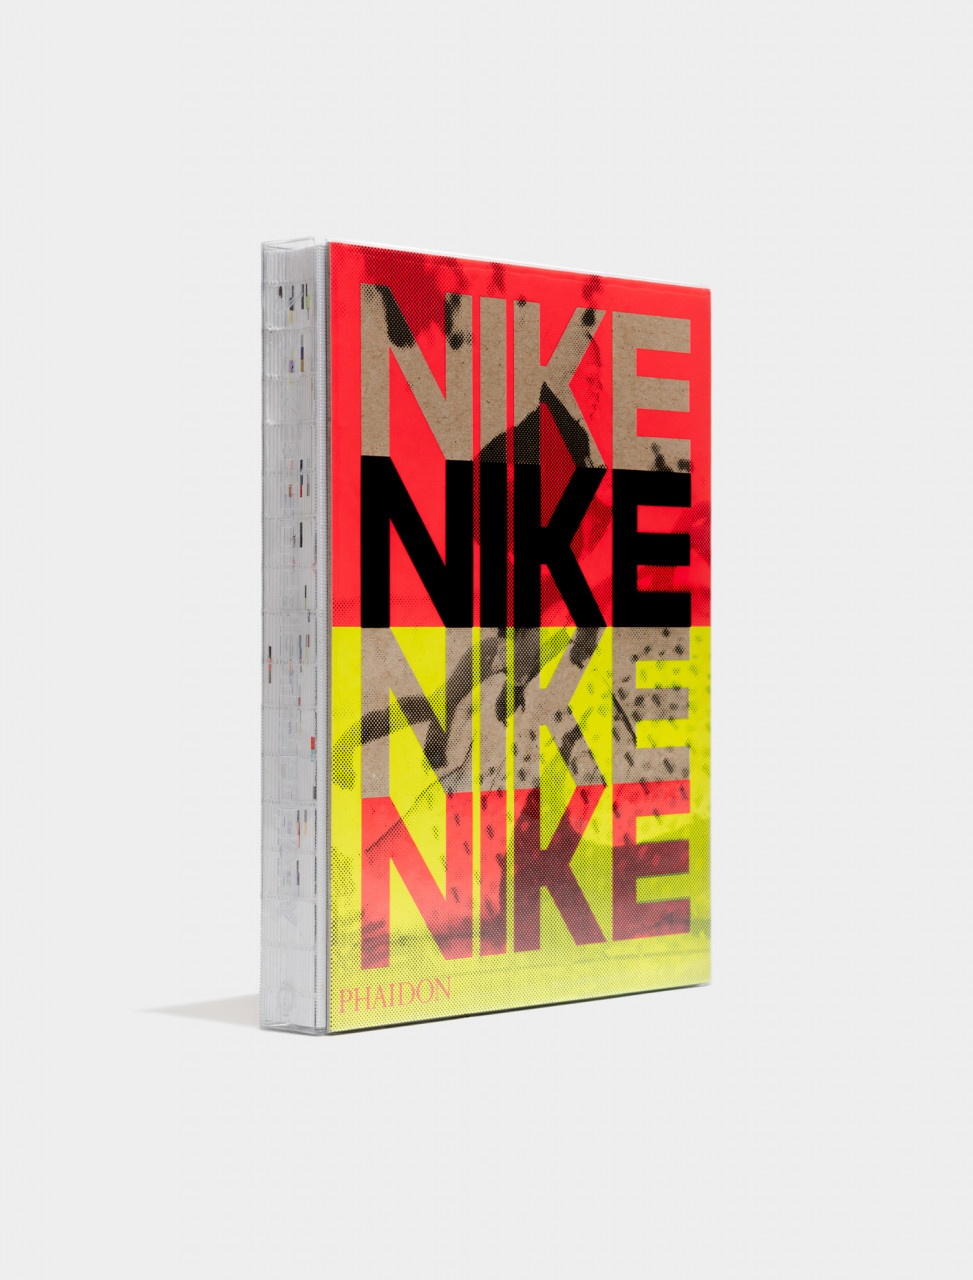 9781838660512 NIKE PHAIDON BETTER IS TEMPORARY